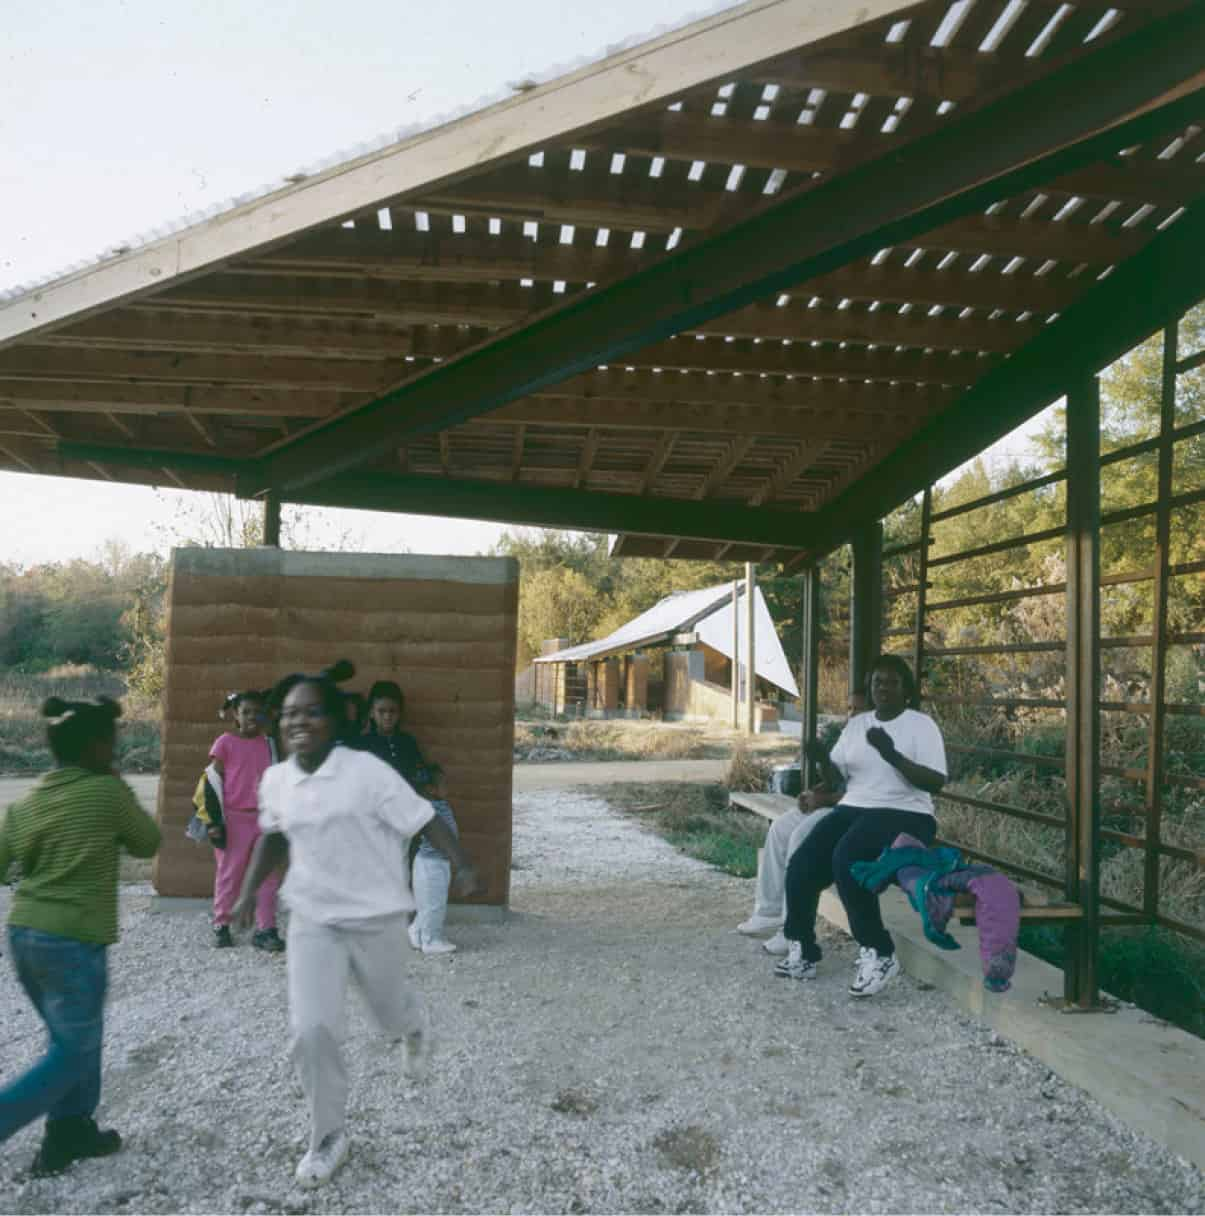 Children playing under the basketball court's roofed area